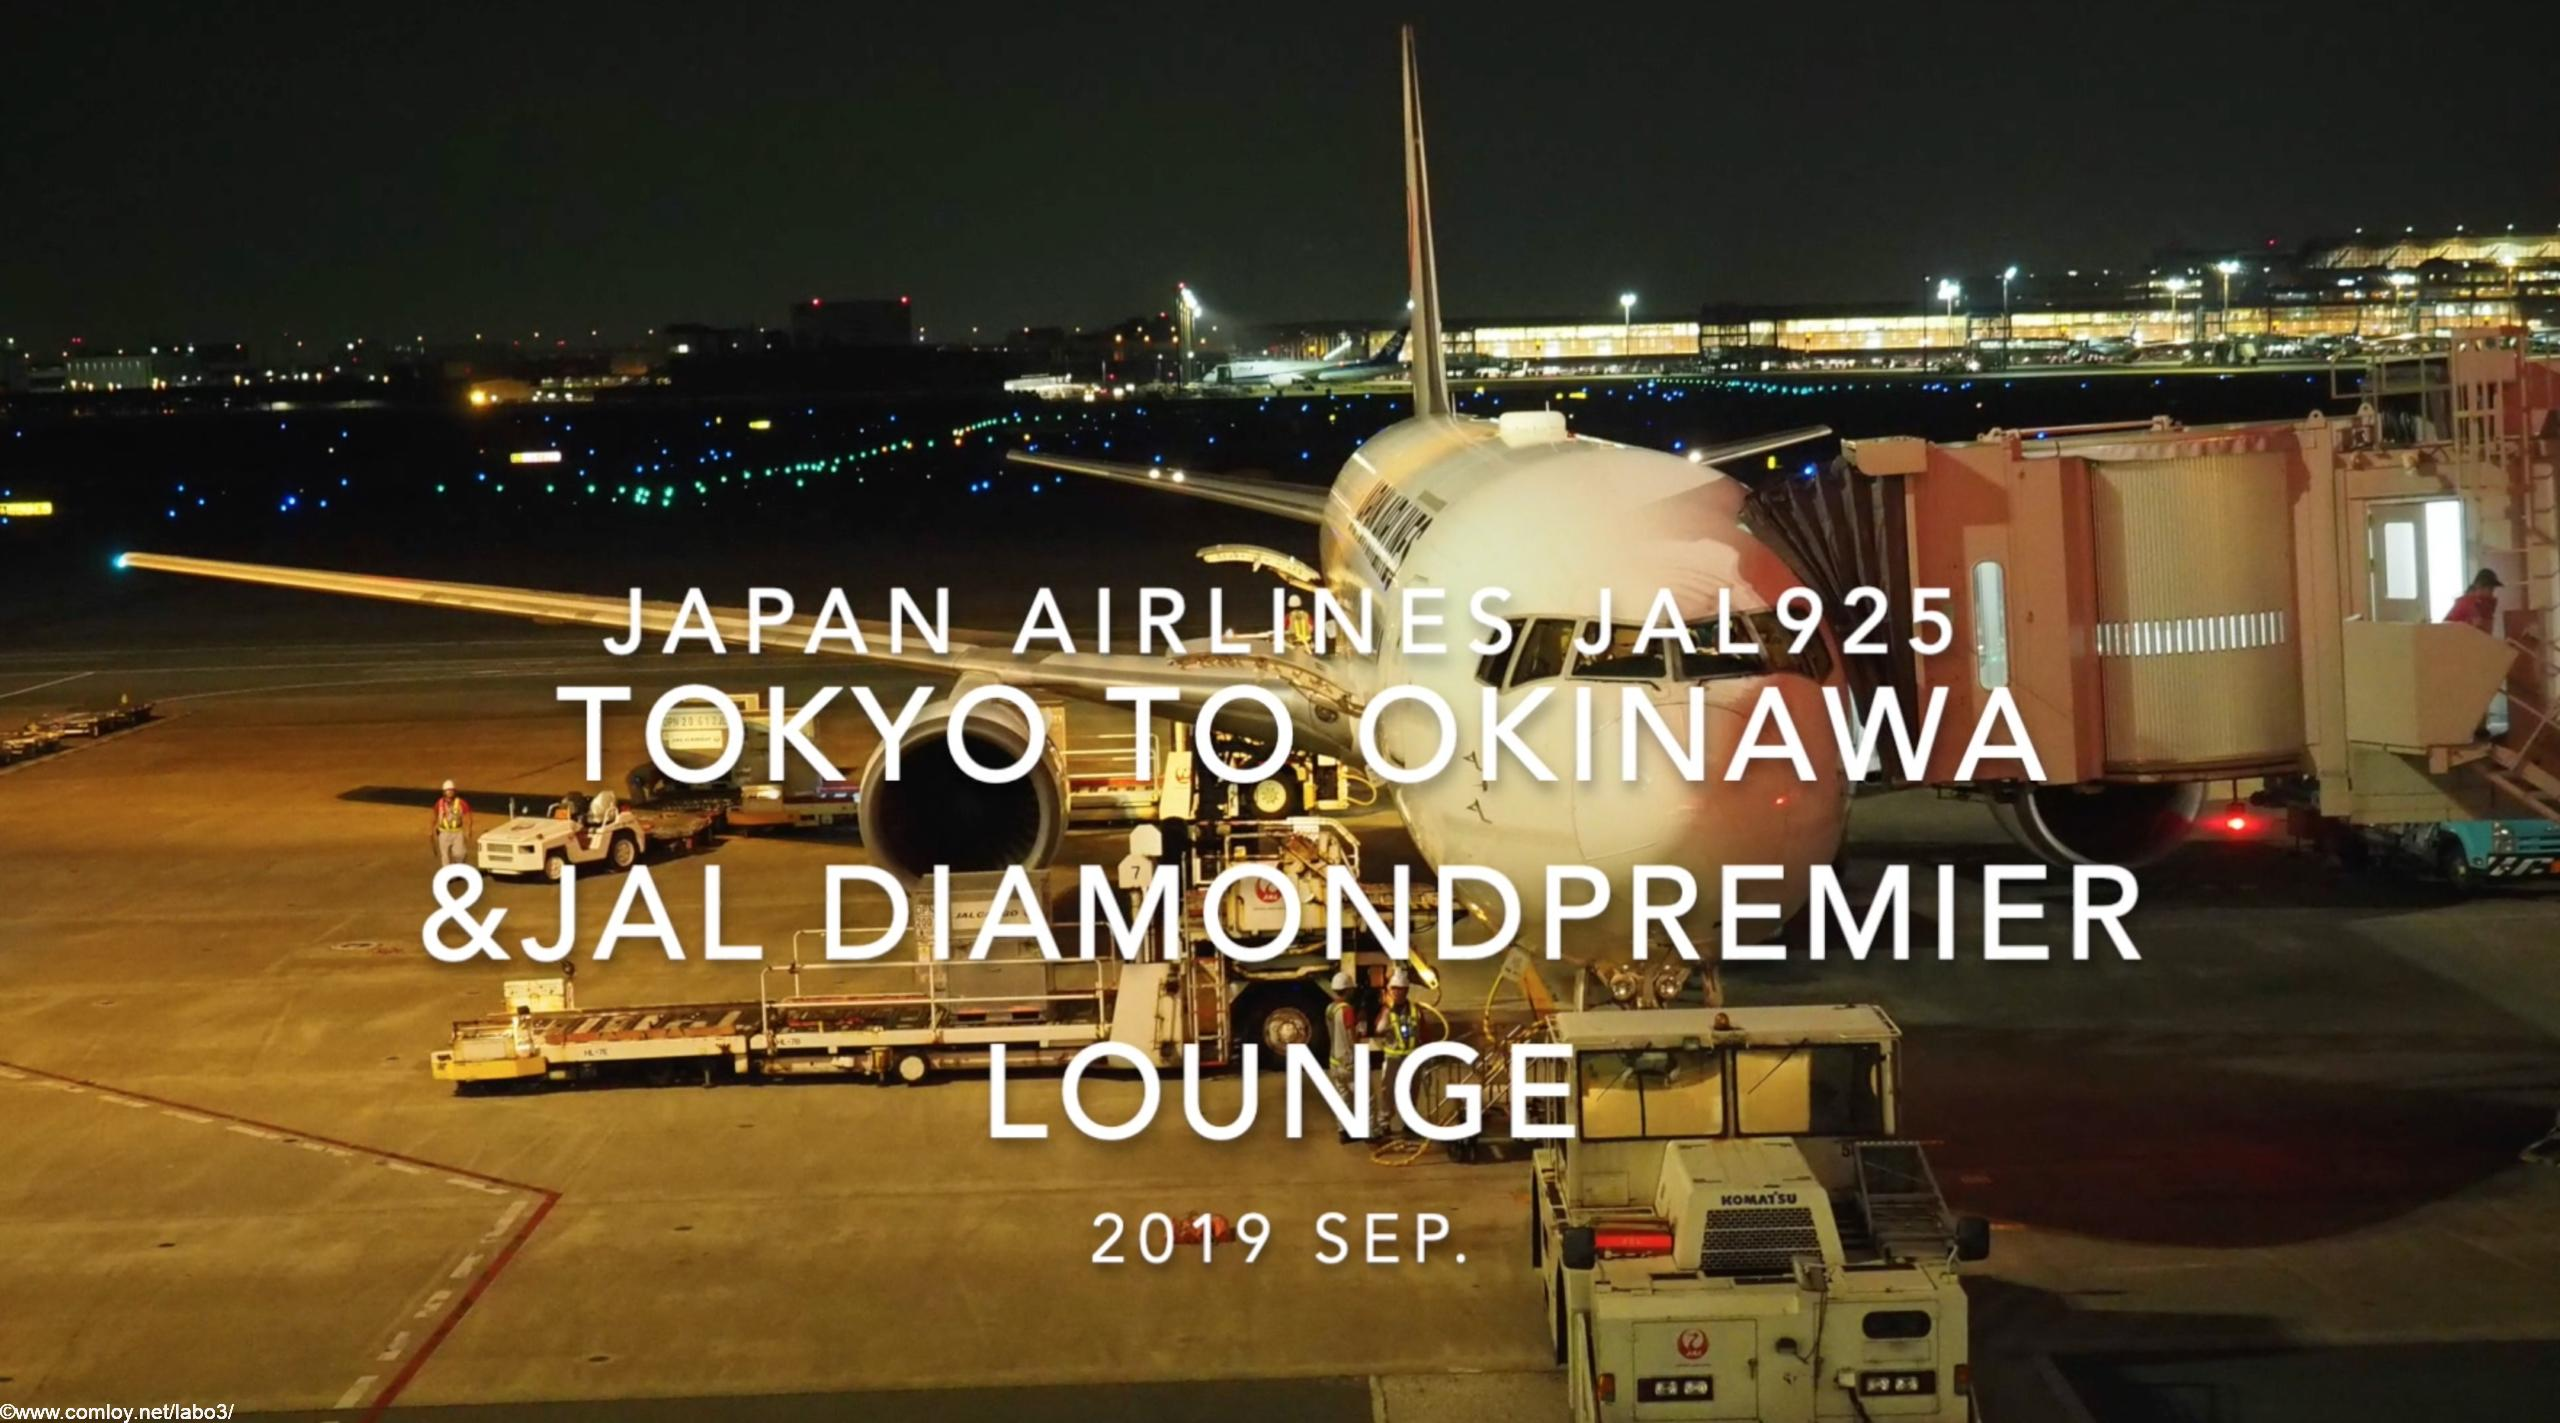 【Flight Report】Japan airlines JAL925 TOKYO HANEDA TO OKINAWA NAHA 2019 SEP 日本航空 羽田 - 那覇 搭乗記